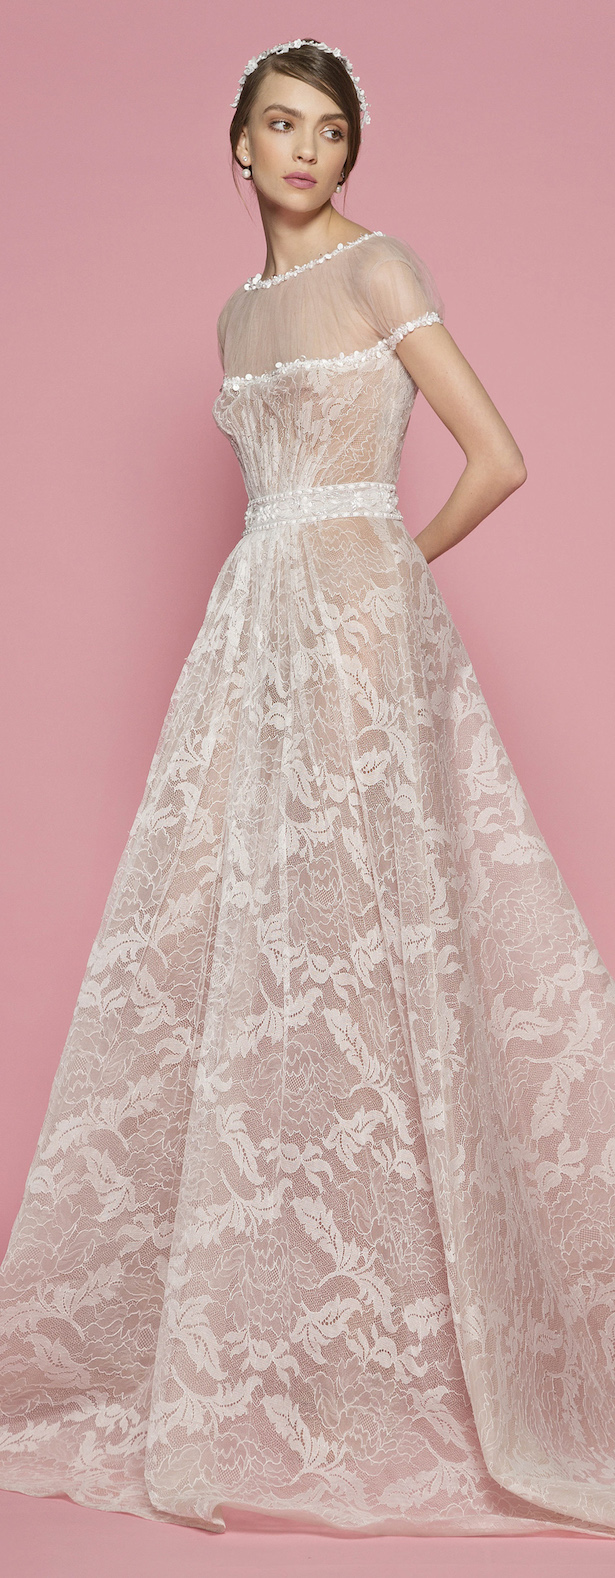 Georges Hobeika Bridal 2018 Wedding Dresses - Belle The Magazine